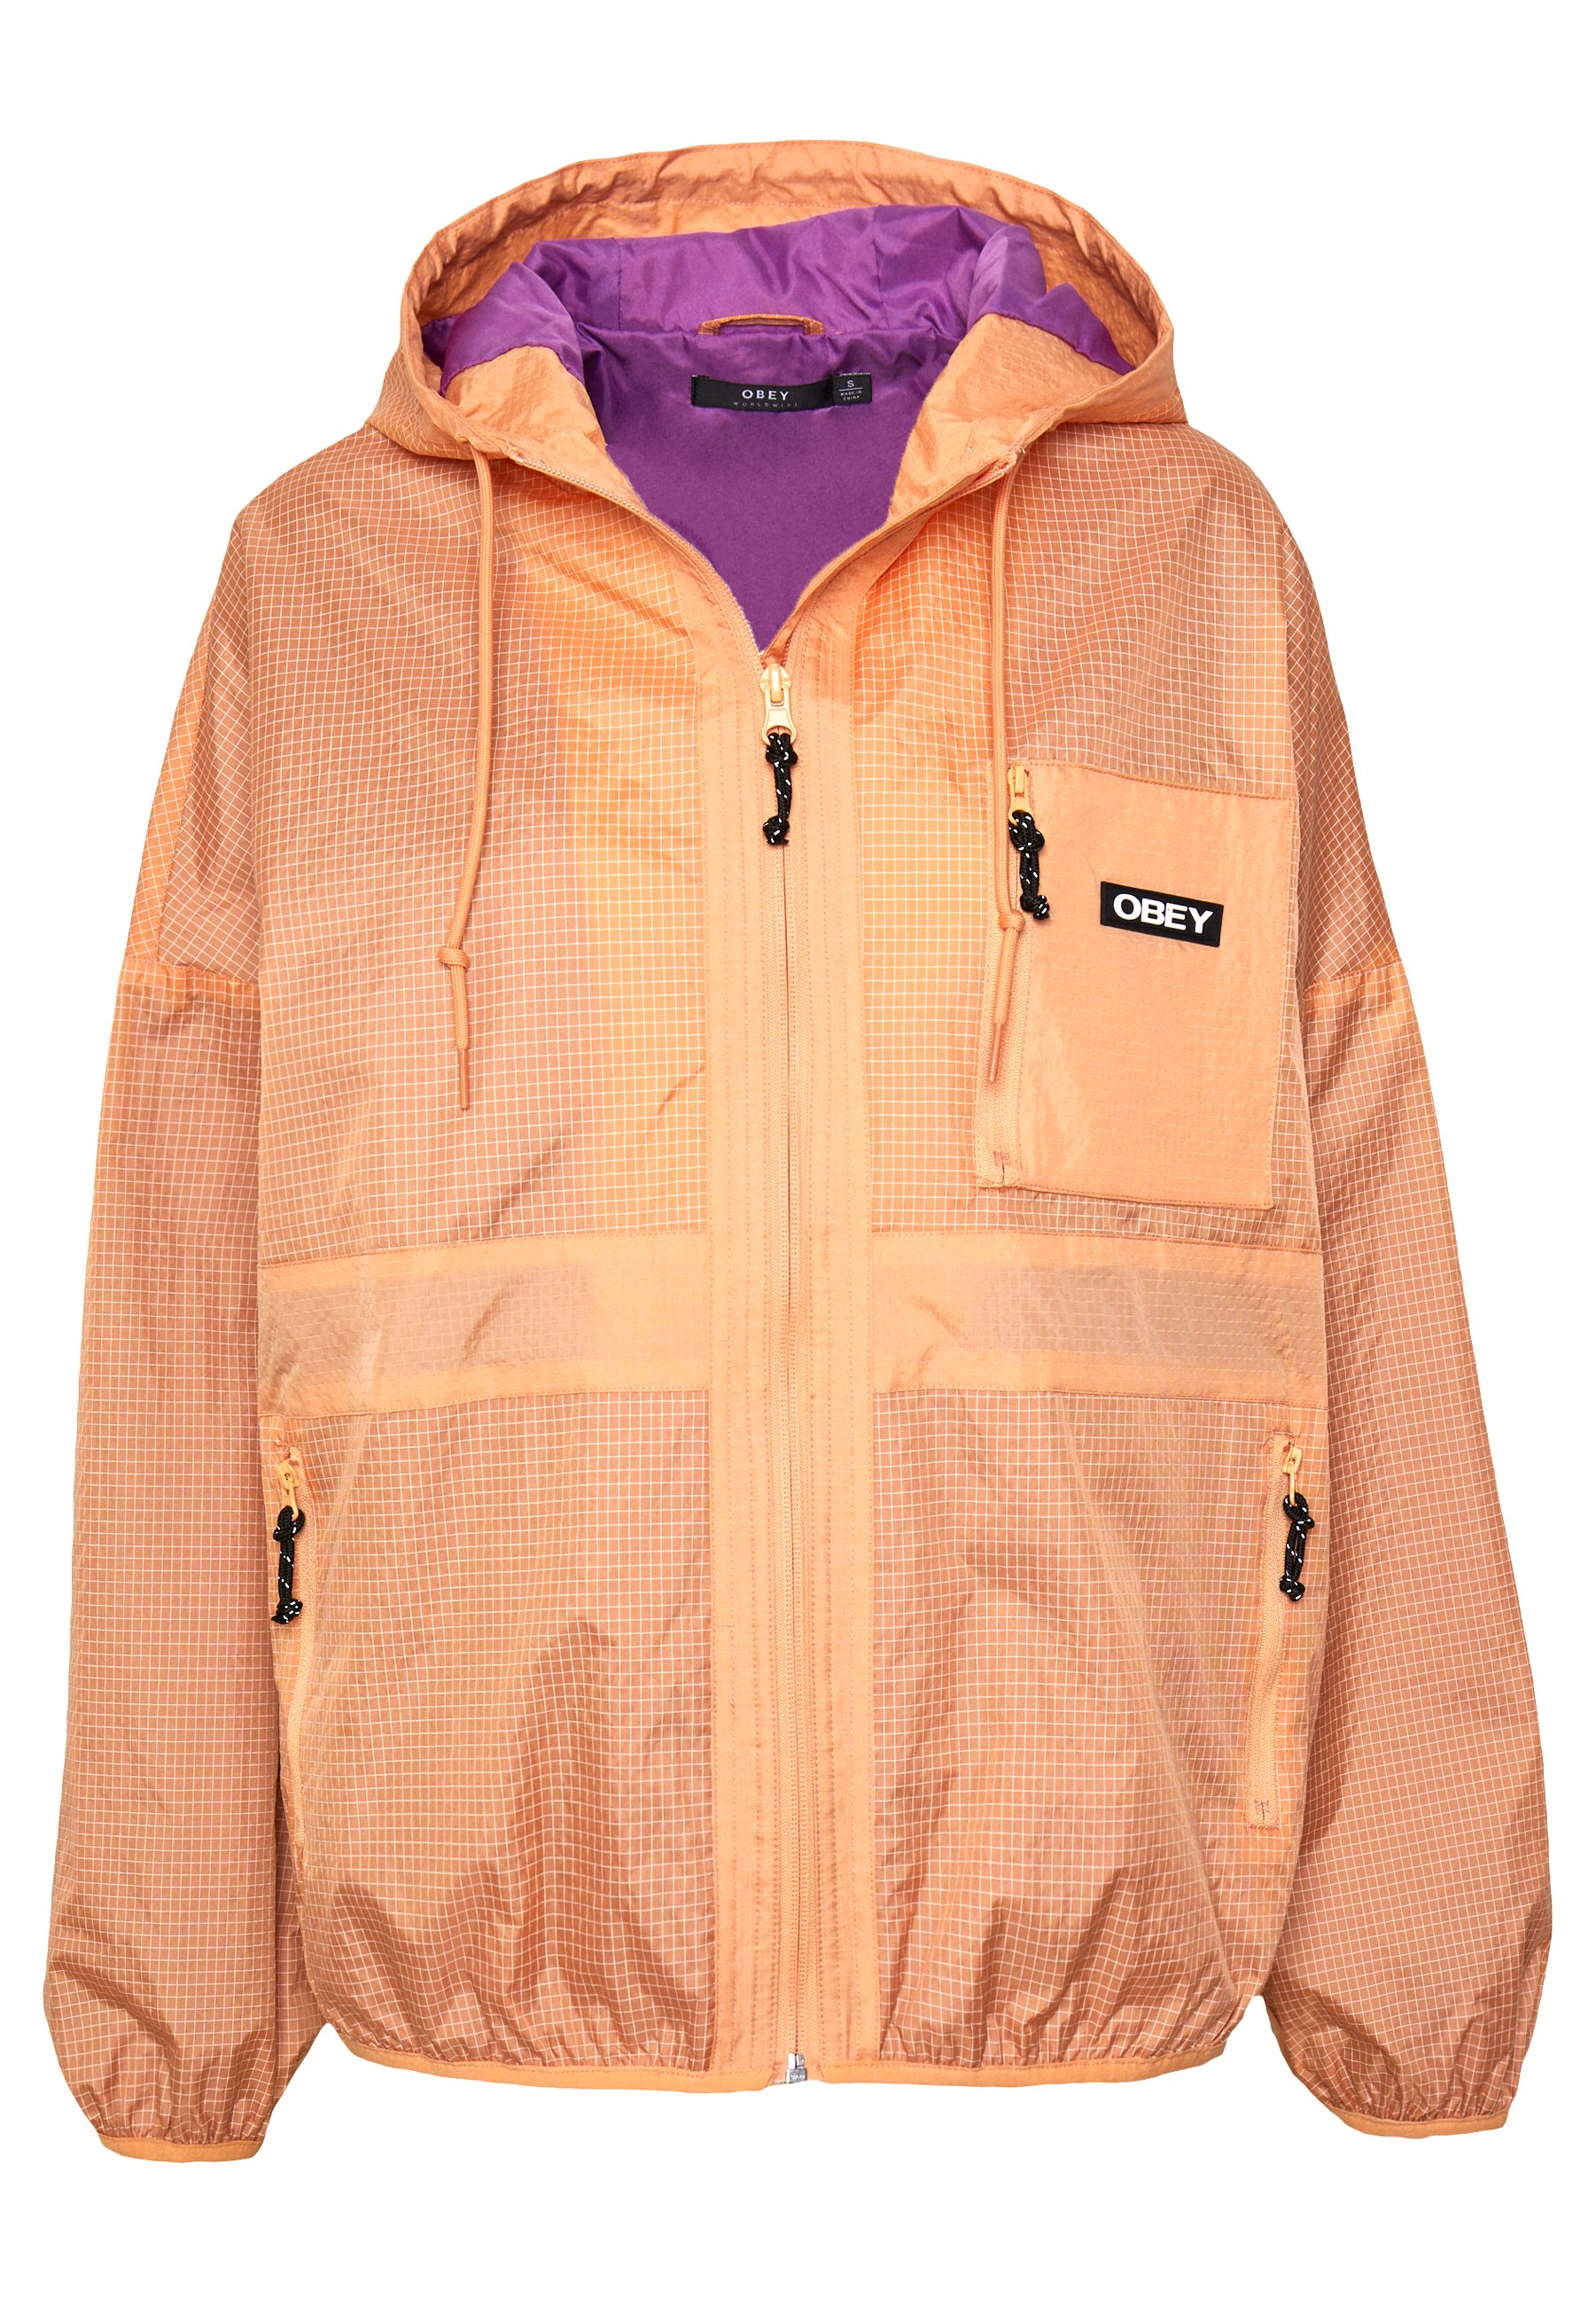 Obey Clothing Riverbed - Tunn Jacka Melon